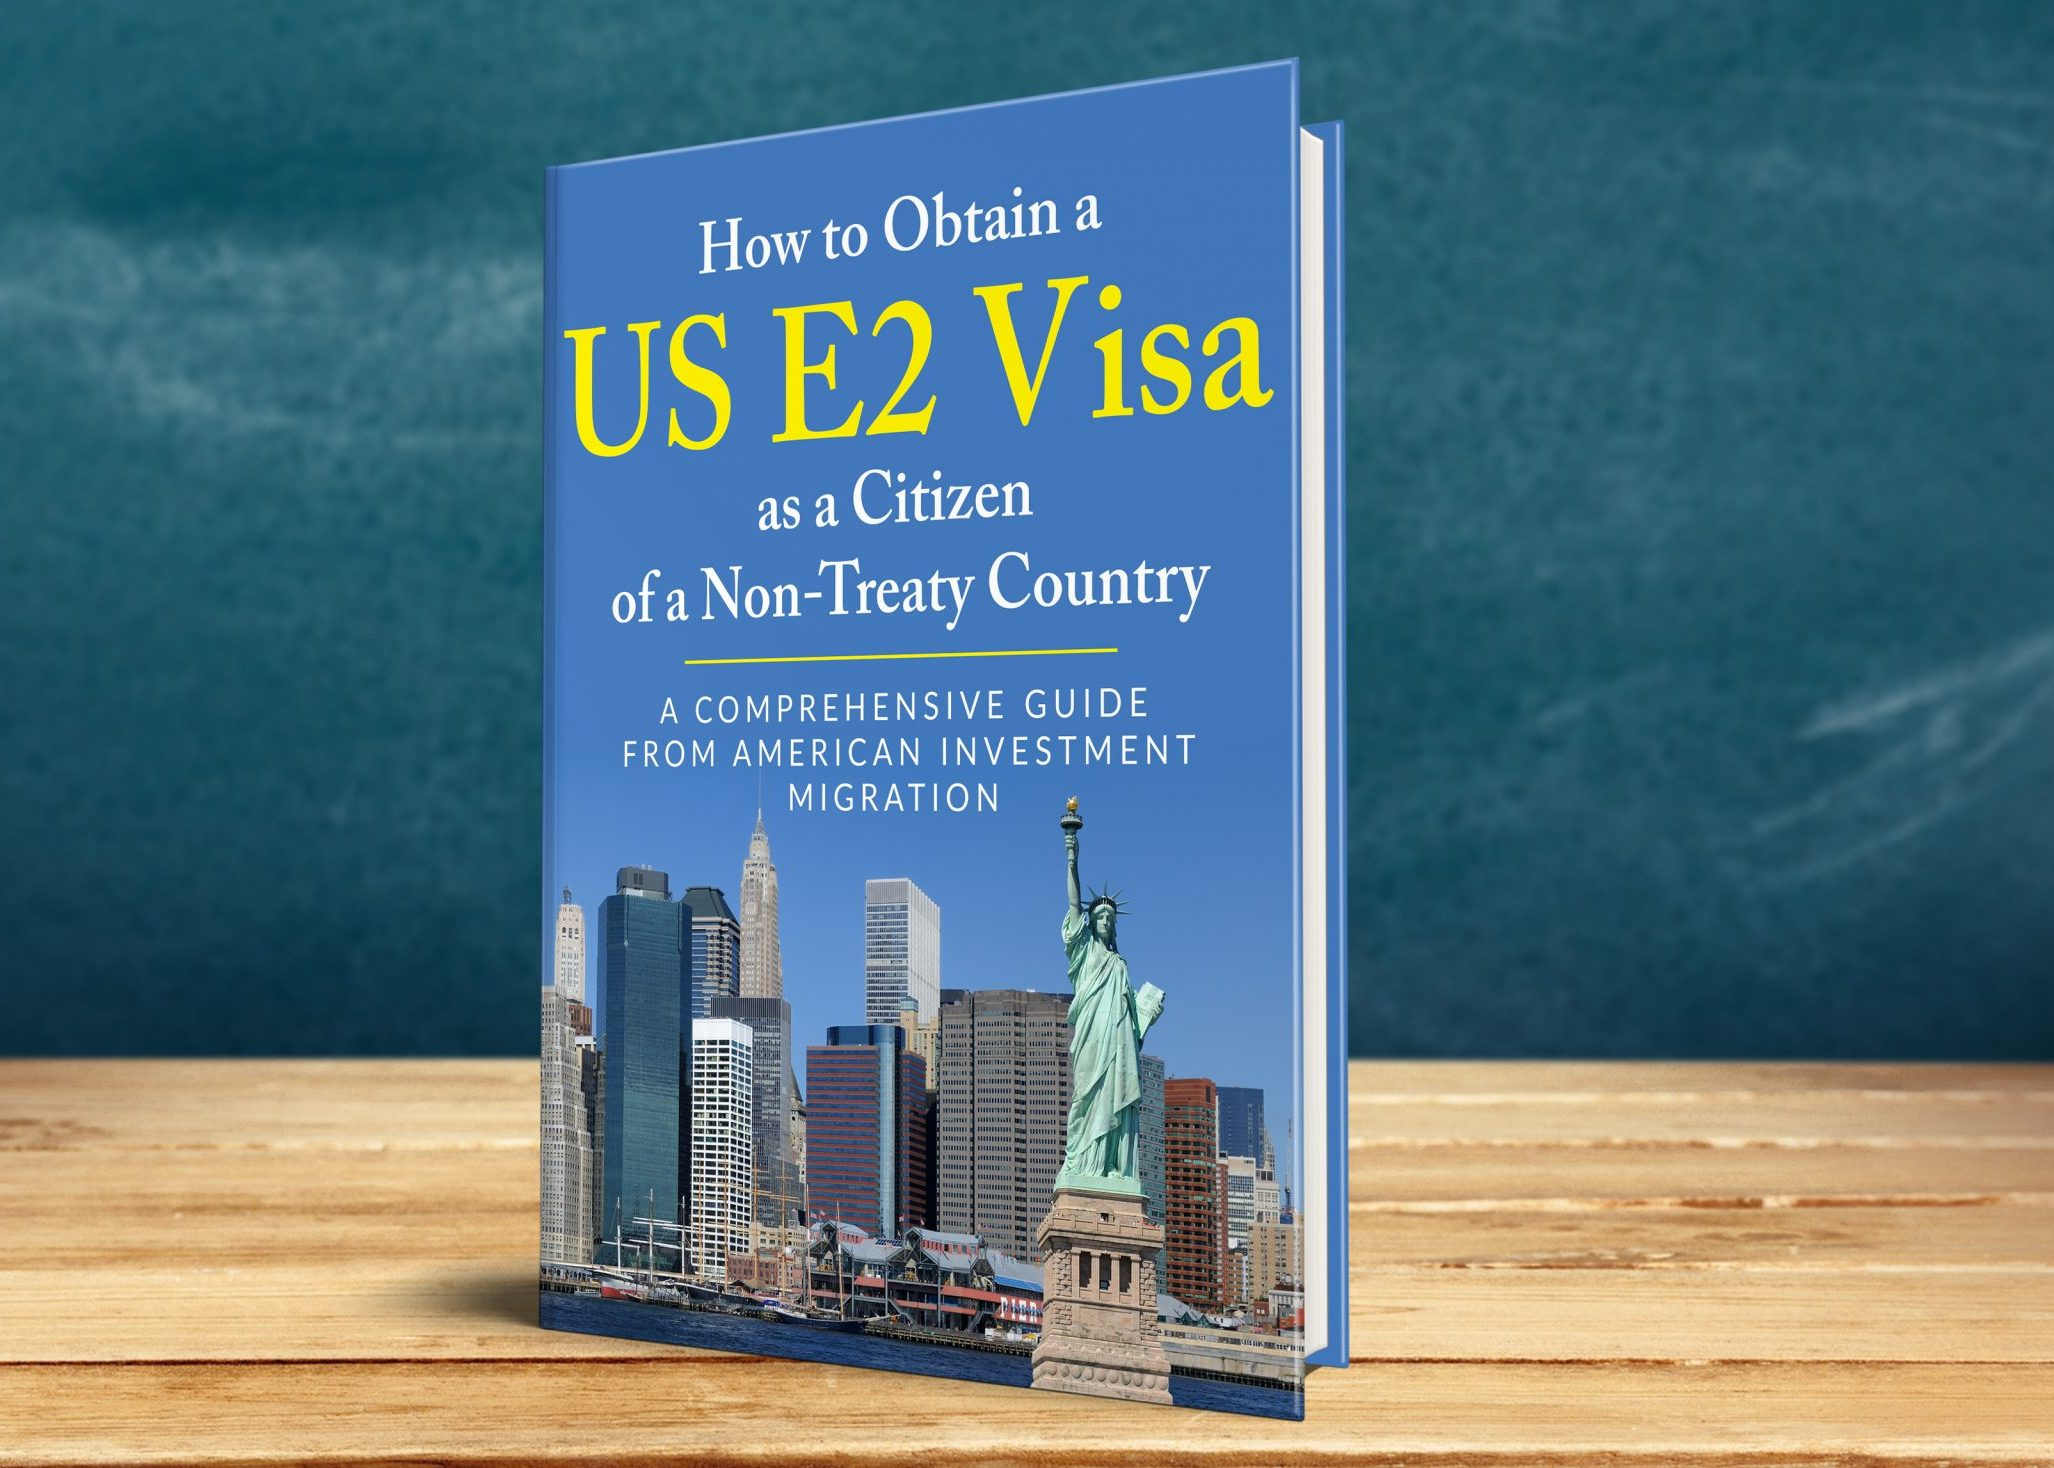 US E-2 Visa as A Citizen of a Non-Treaty Country